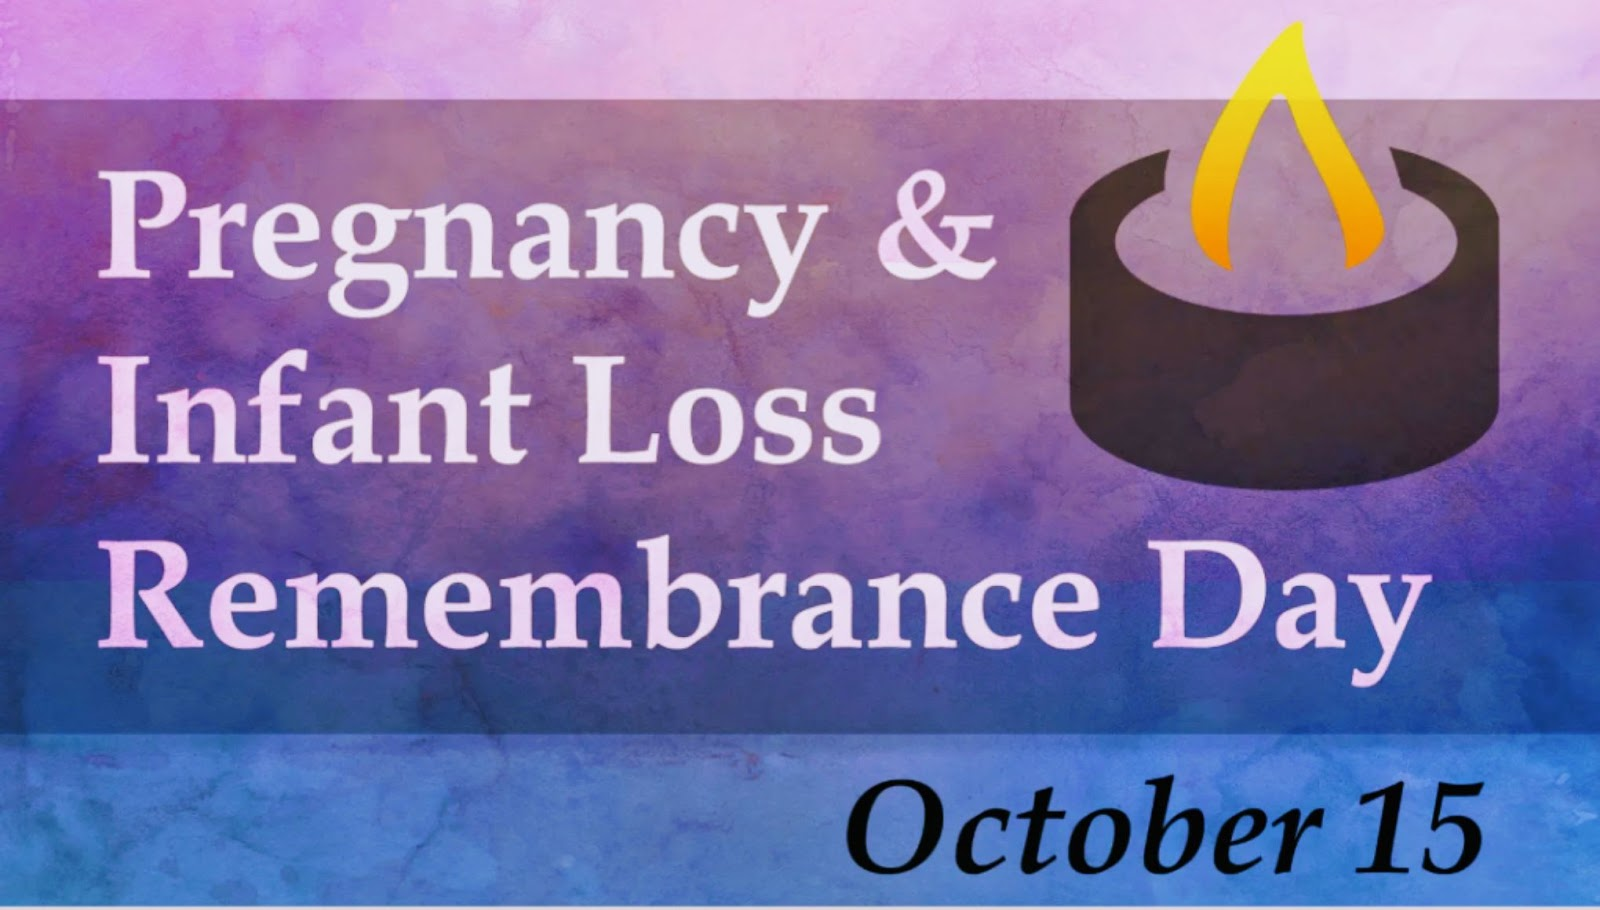 National Pregnancy and Infant Loss Remembrance Day Wishes Awesome Picture